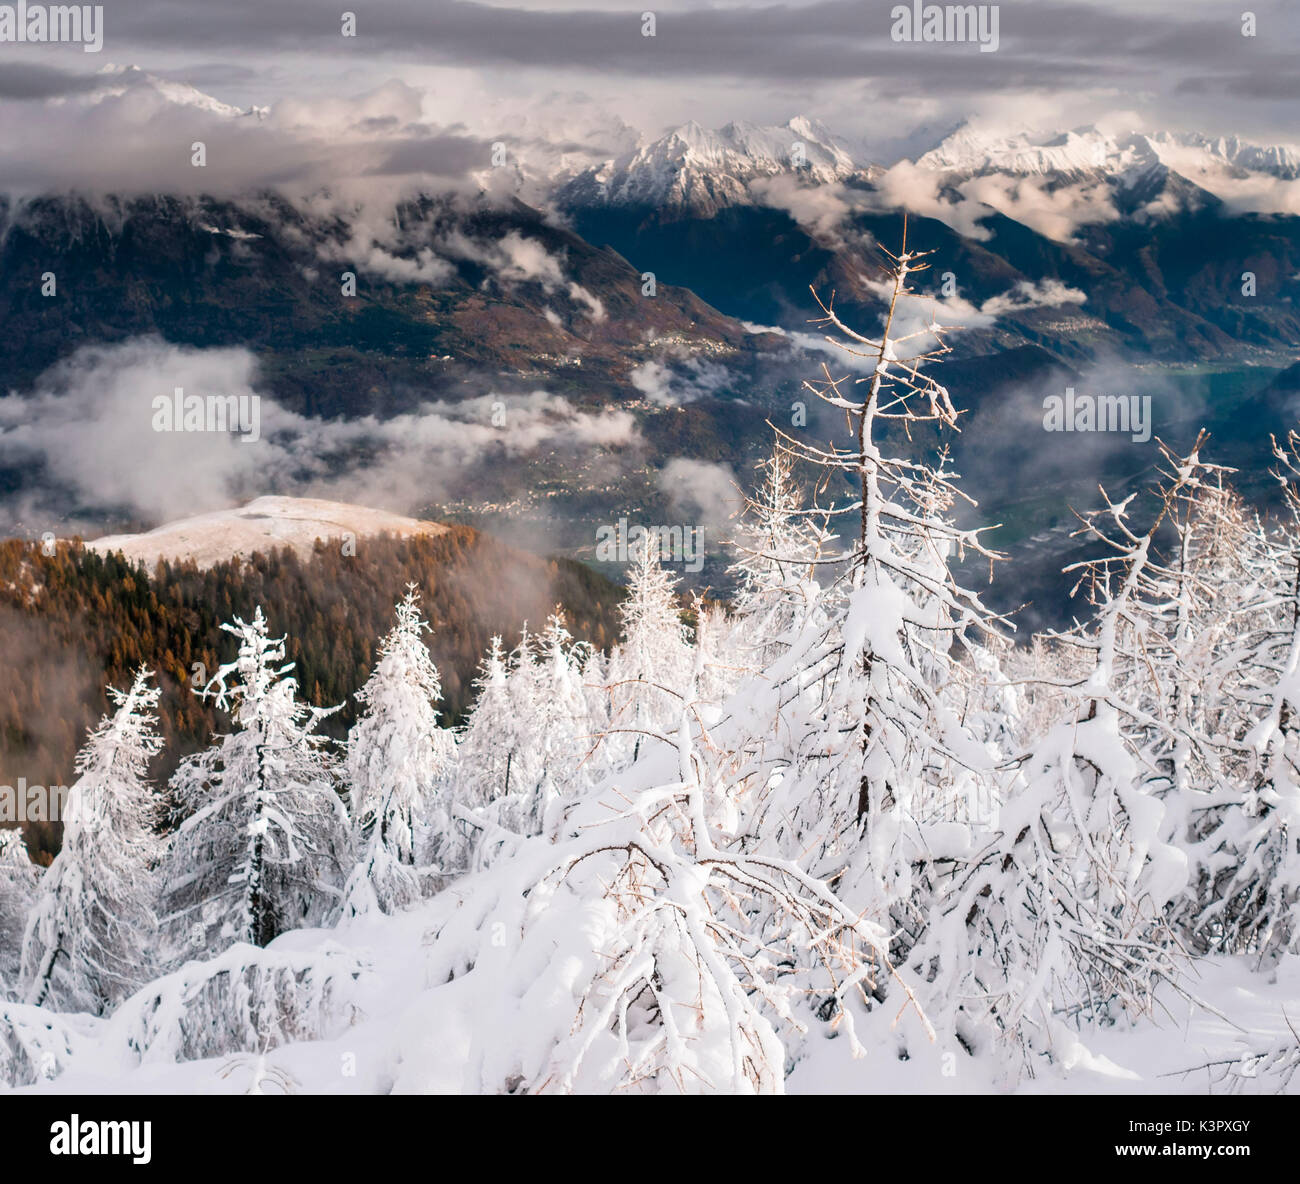 Severe contrasts between larchs filled with snow and the dark bottom of and alpine valley, Valtellina, Italy - Stock Image